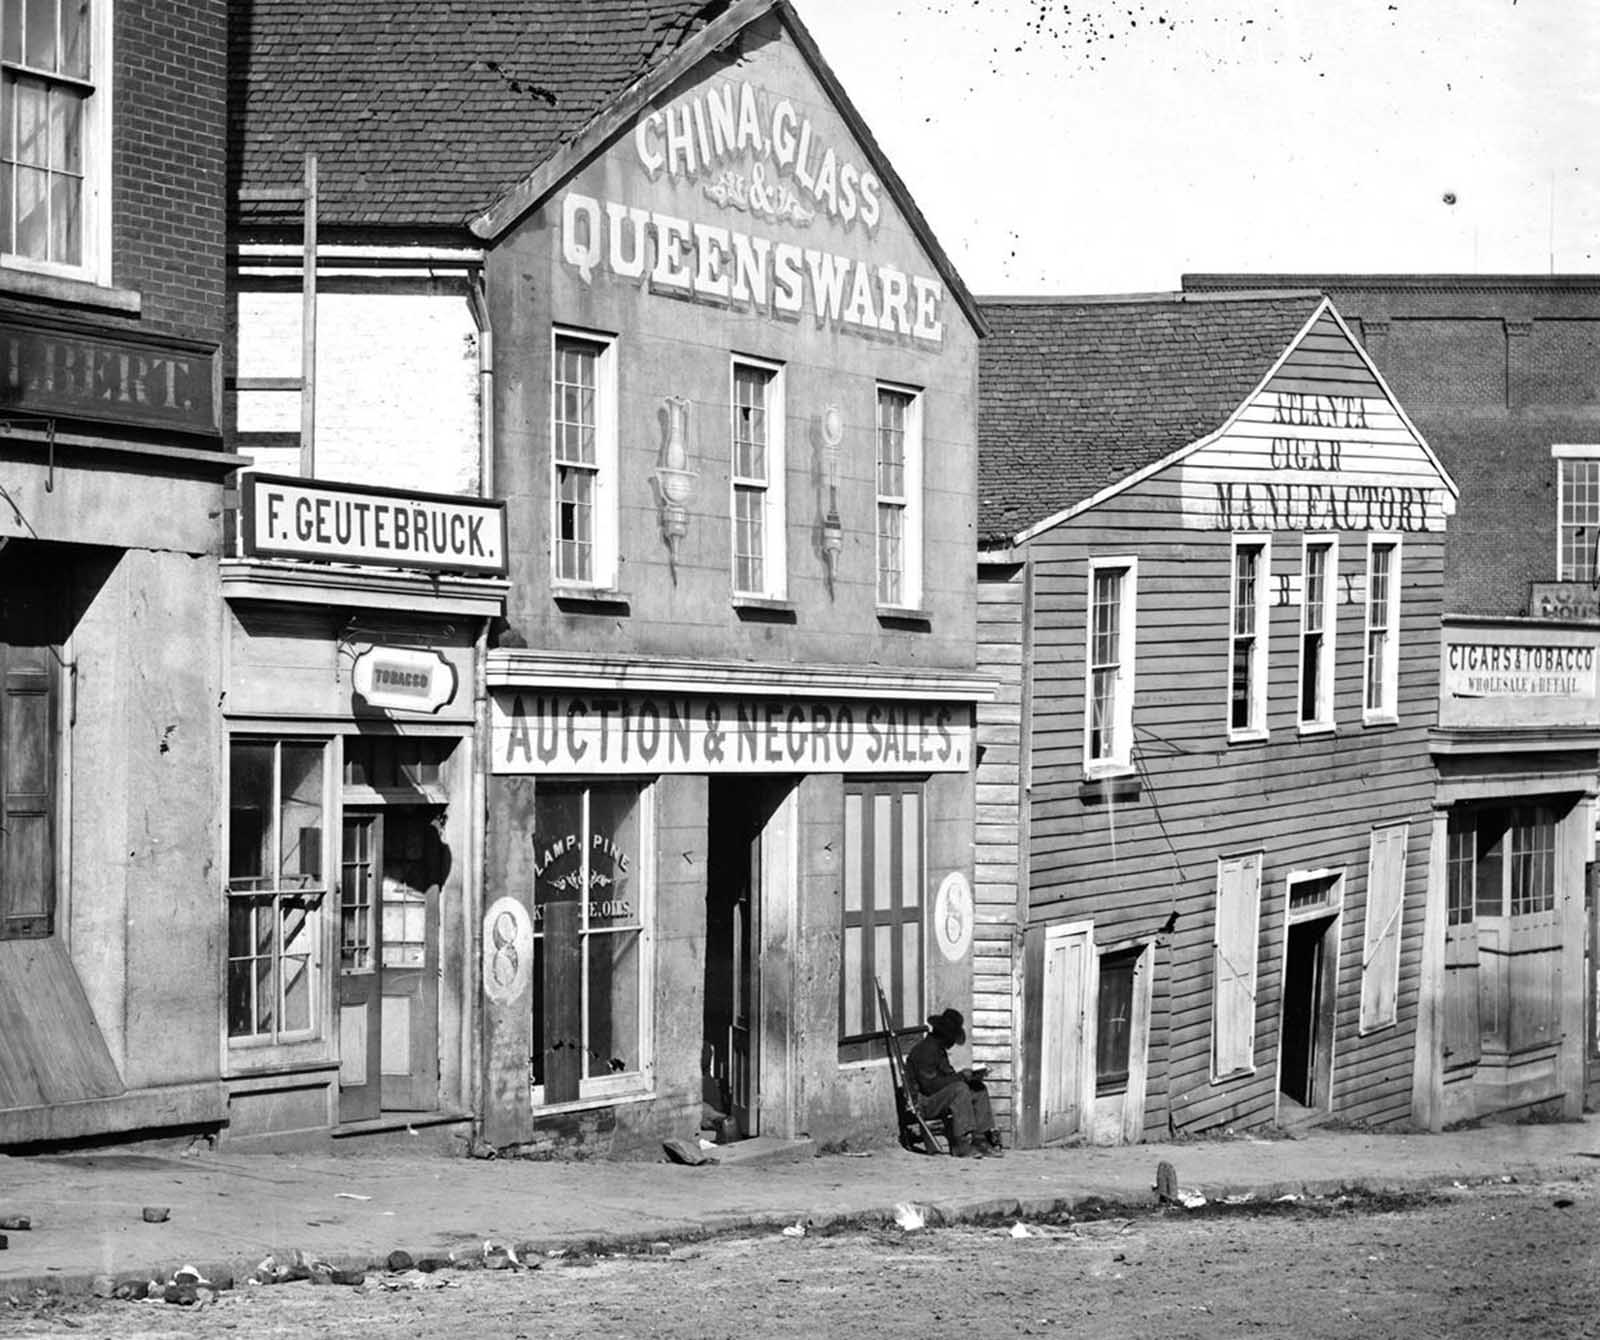 A black Union soldier sits, posted in front of a slave auction house on Whitehall Street in Atlanta, Georgia, in 1864. The sign reads